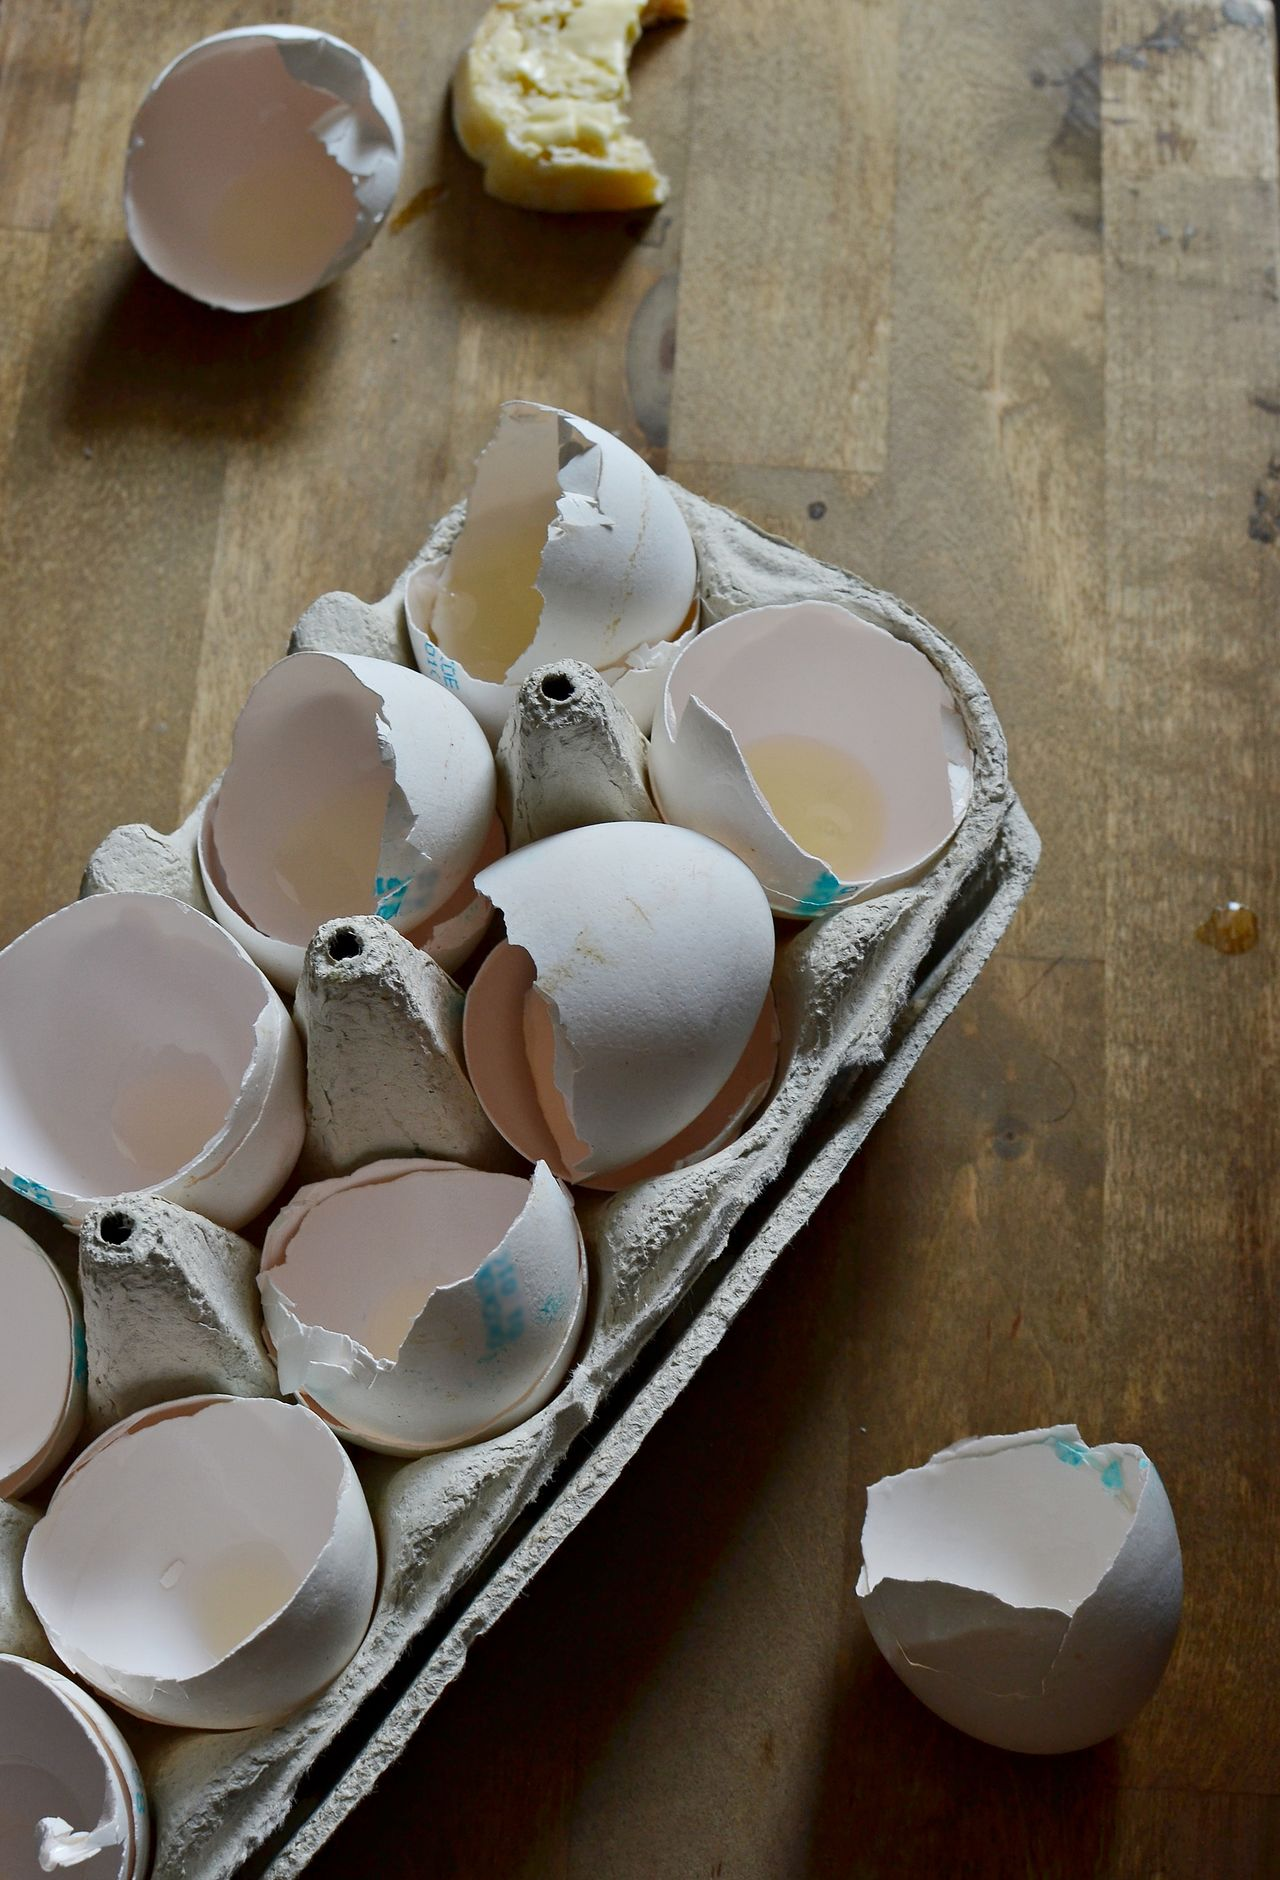 A carton box of empty egg shells Above Carton Box Close-up Cooking Egg Shells Eggs Empty Food And Drink Food Ingredients Freshness Full Of High Angle View In The Kitchen Indoors  No People Wooden Background